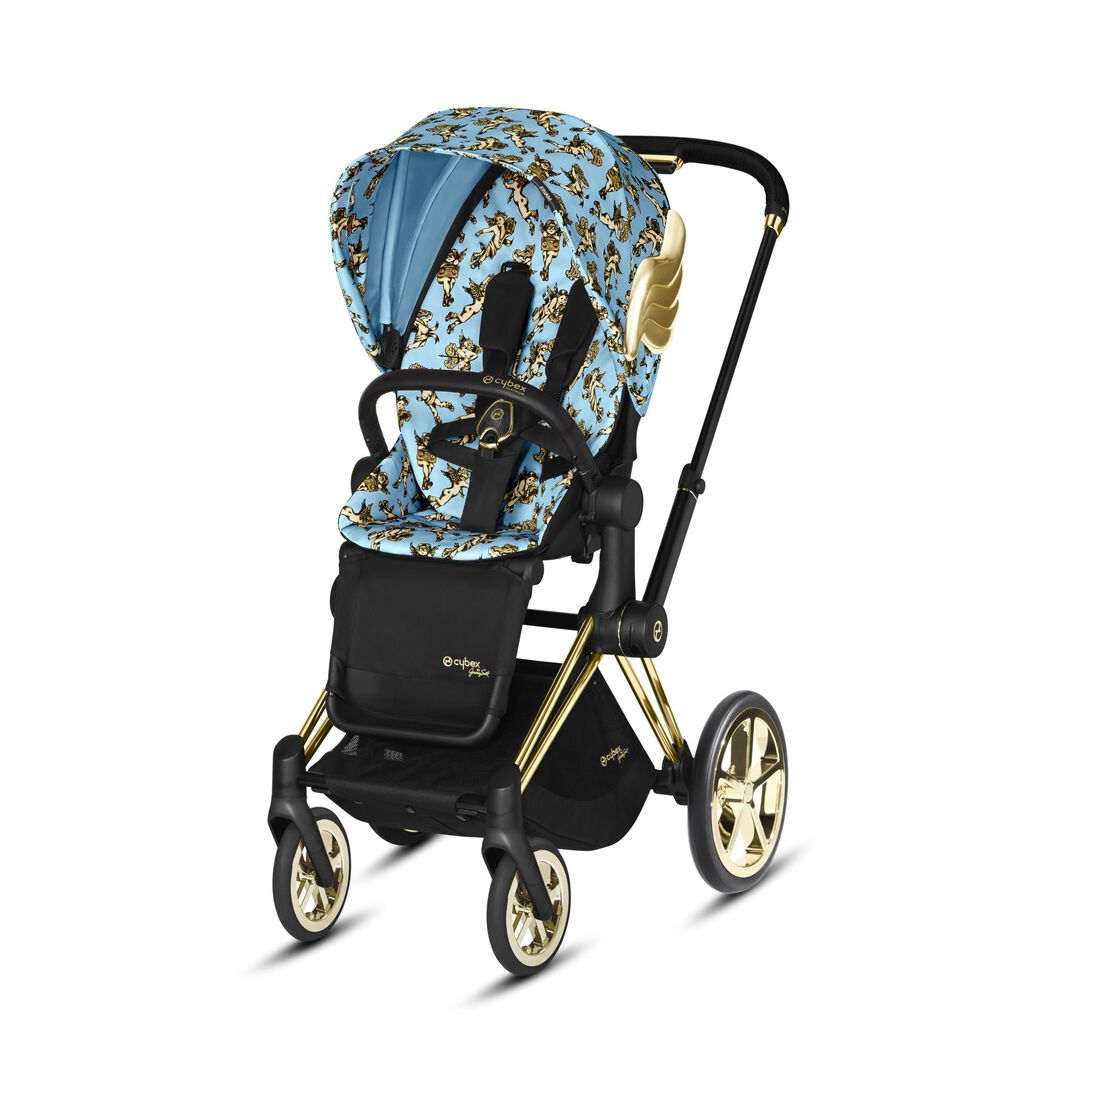 CYBEX Priam Jeremy Scott - Cherubs Blue in Cherubs Blue large Bild 1